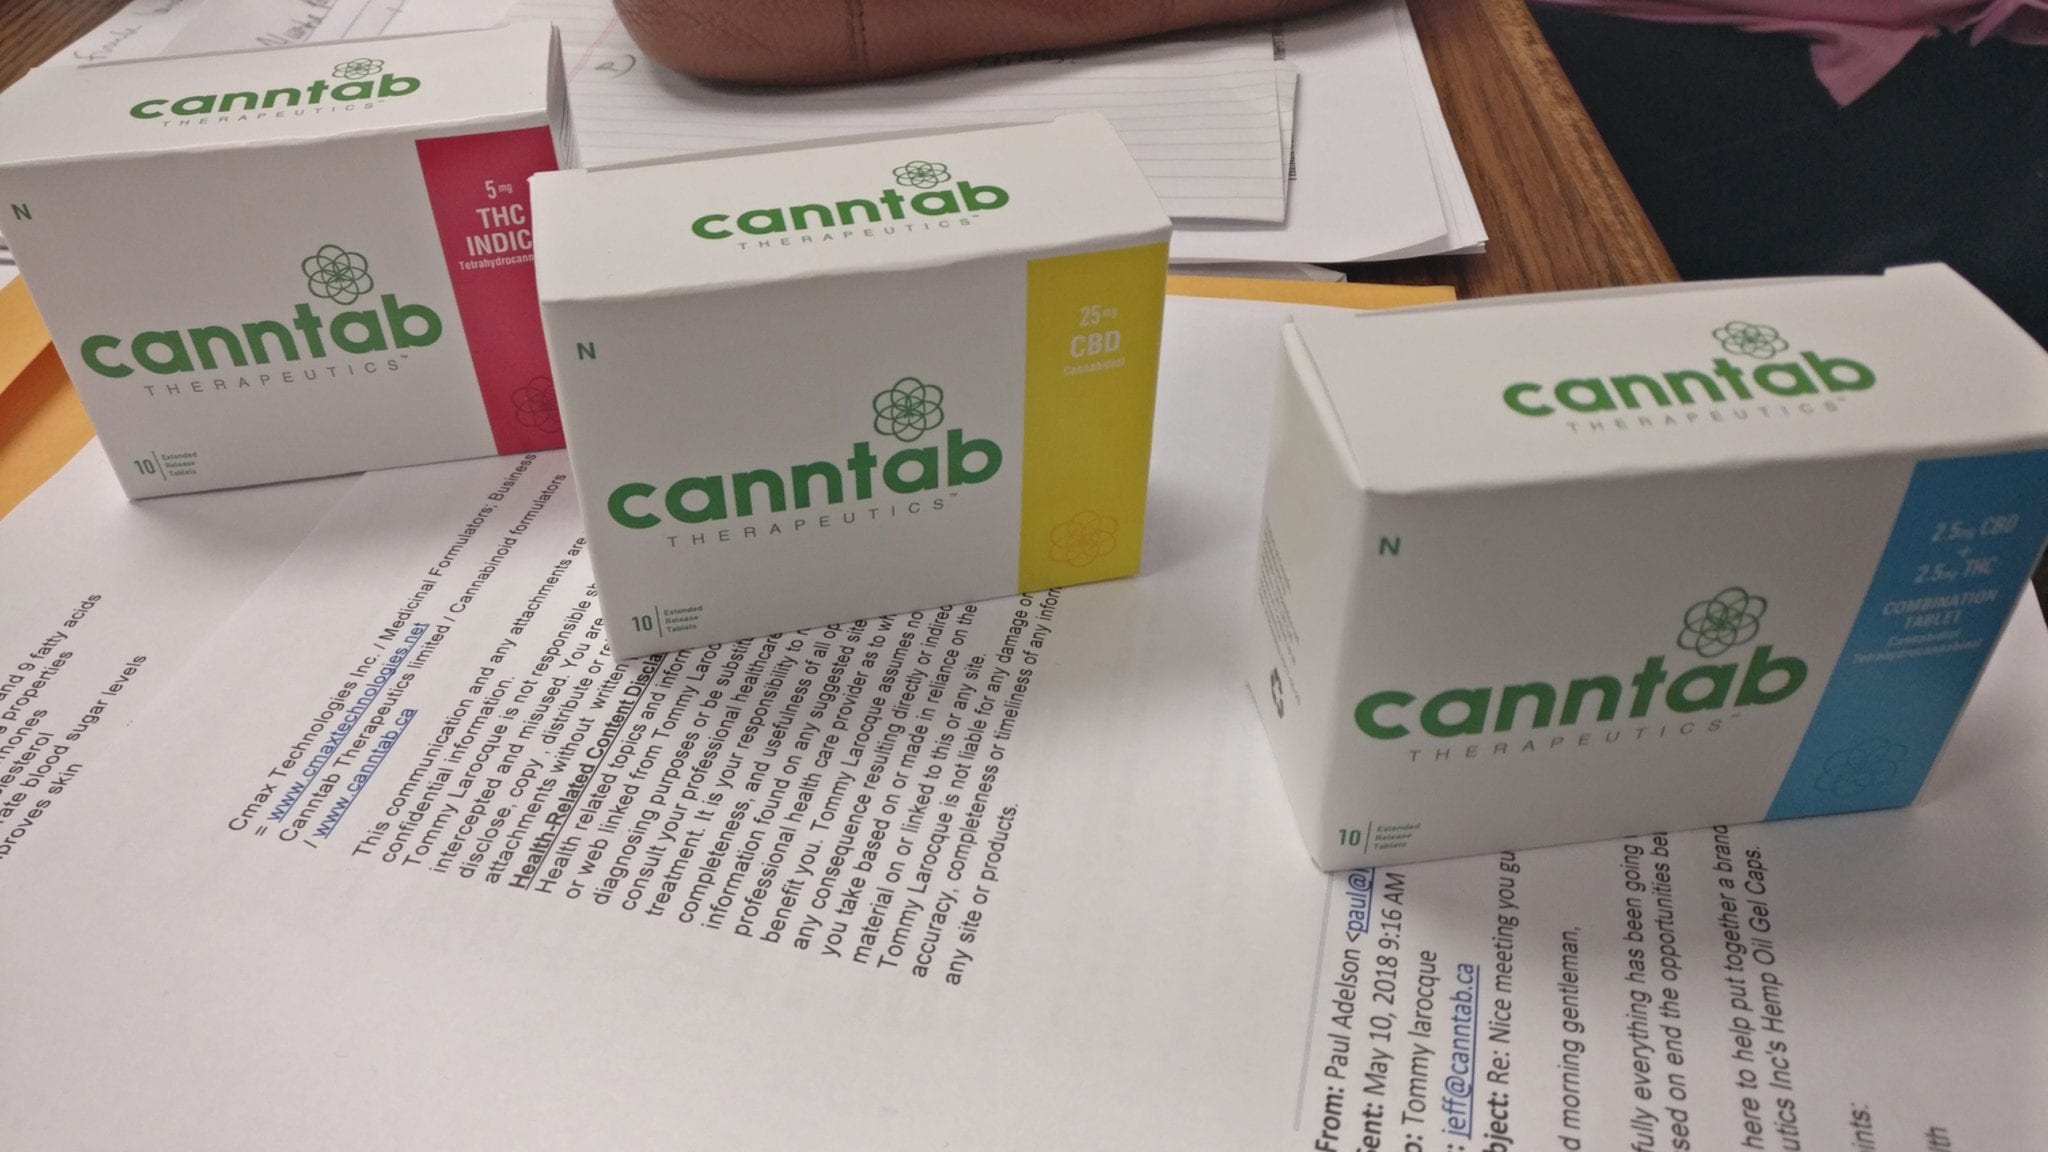 Canntab enters $1M purchase agreement with MediPharm